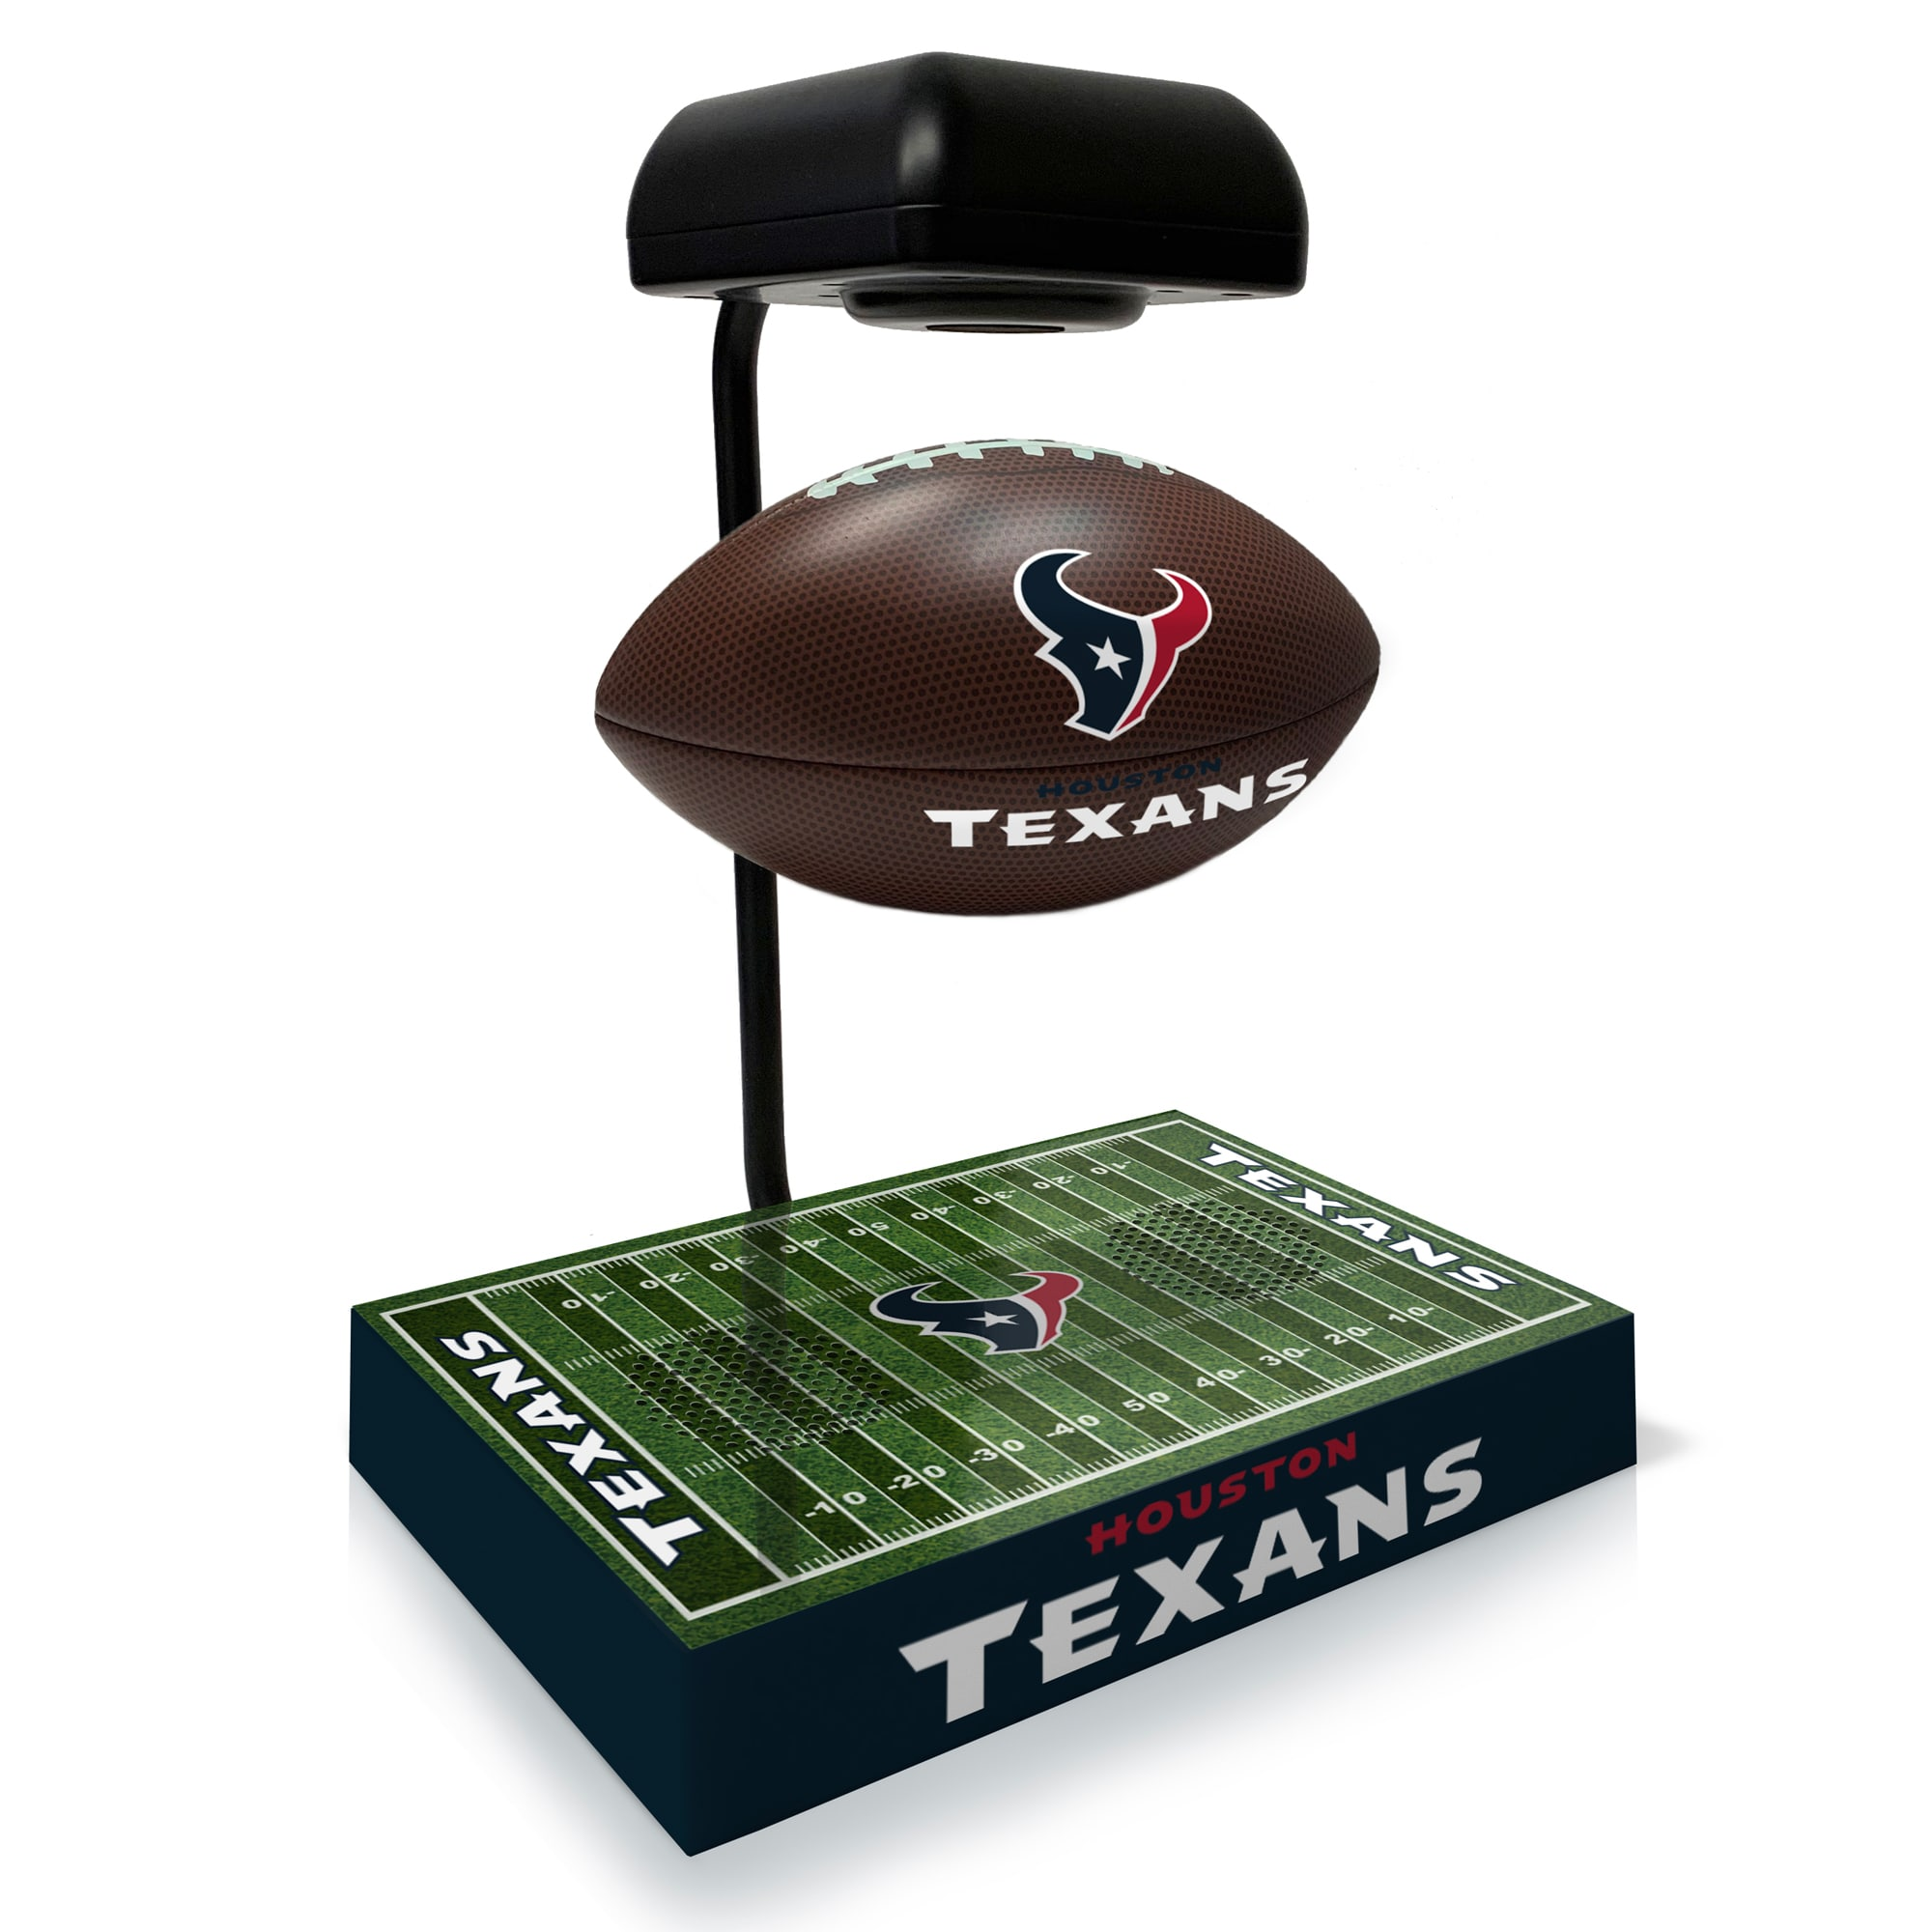 Houston Texans Hover Football With Bluetooth Speaker